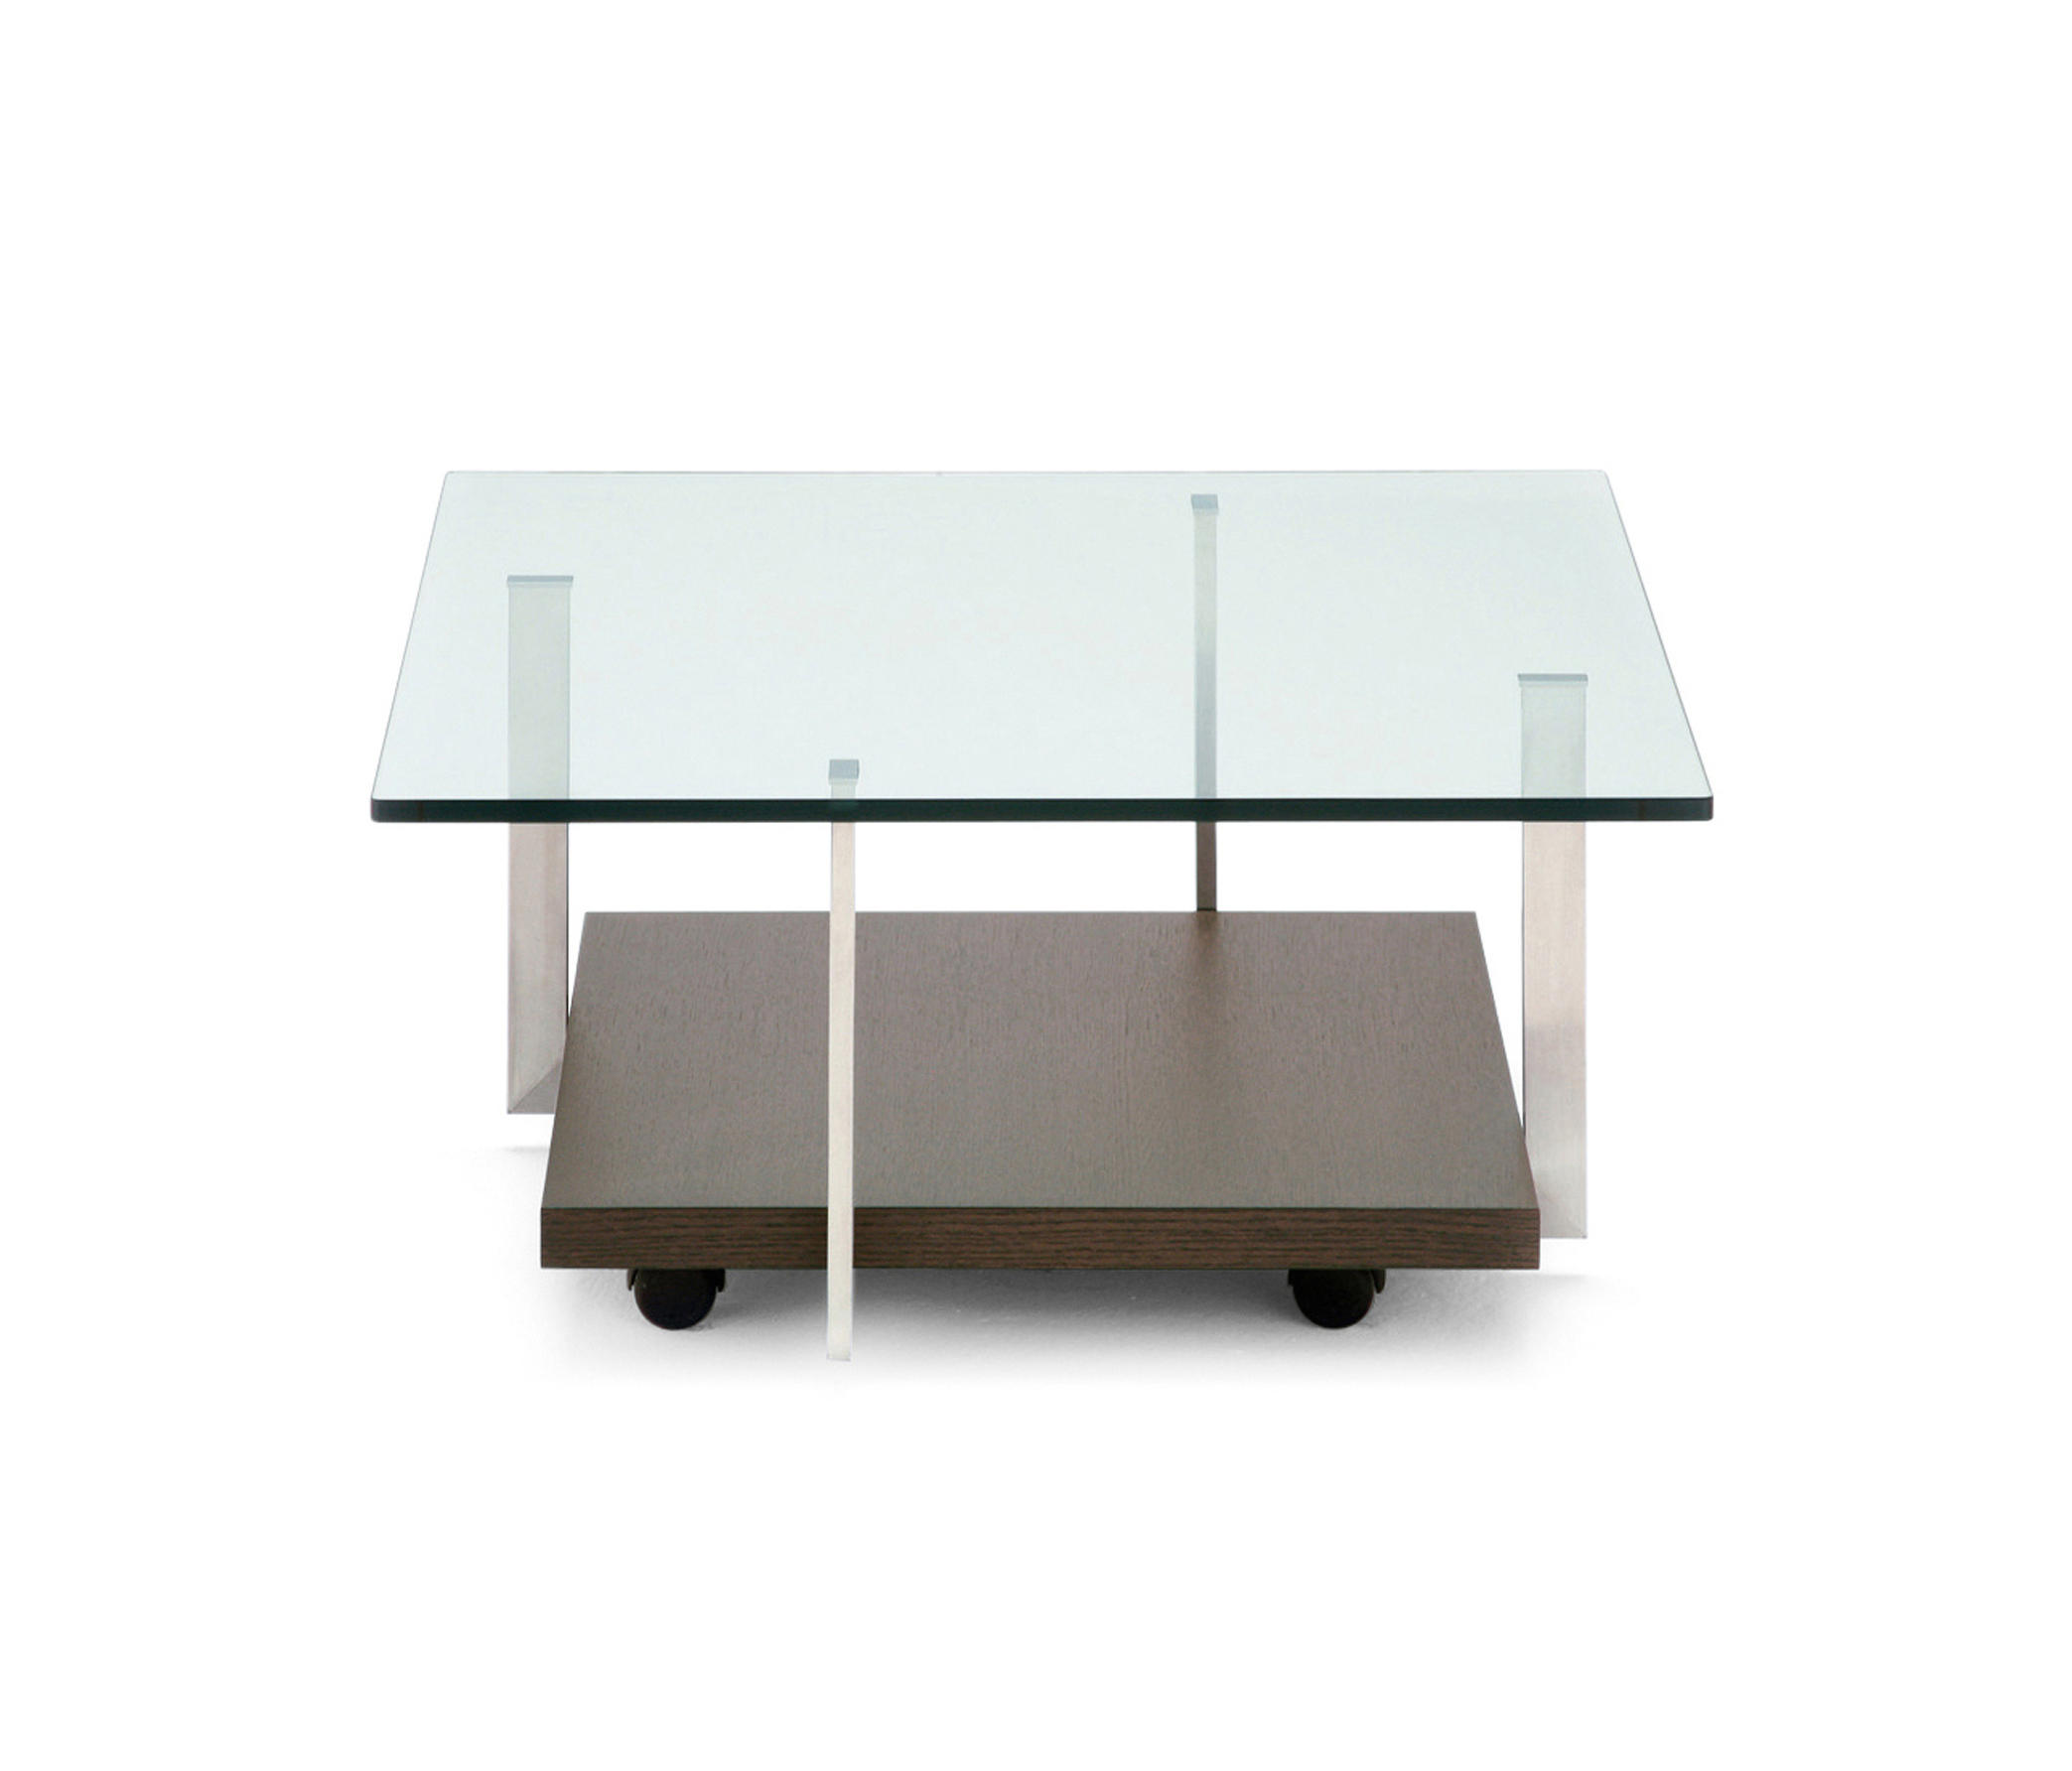 Rolf Benz Couchtisch 8770 Preis Rolf Benz 8730 Coffee Tables From Rolf Benz Architonic